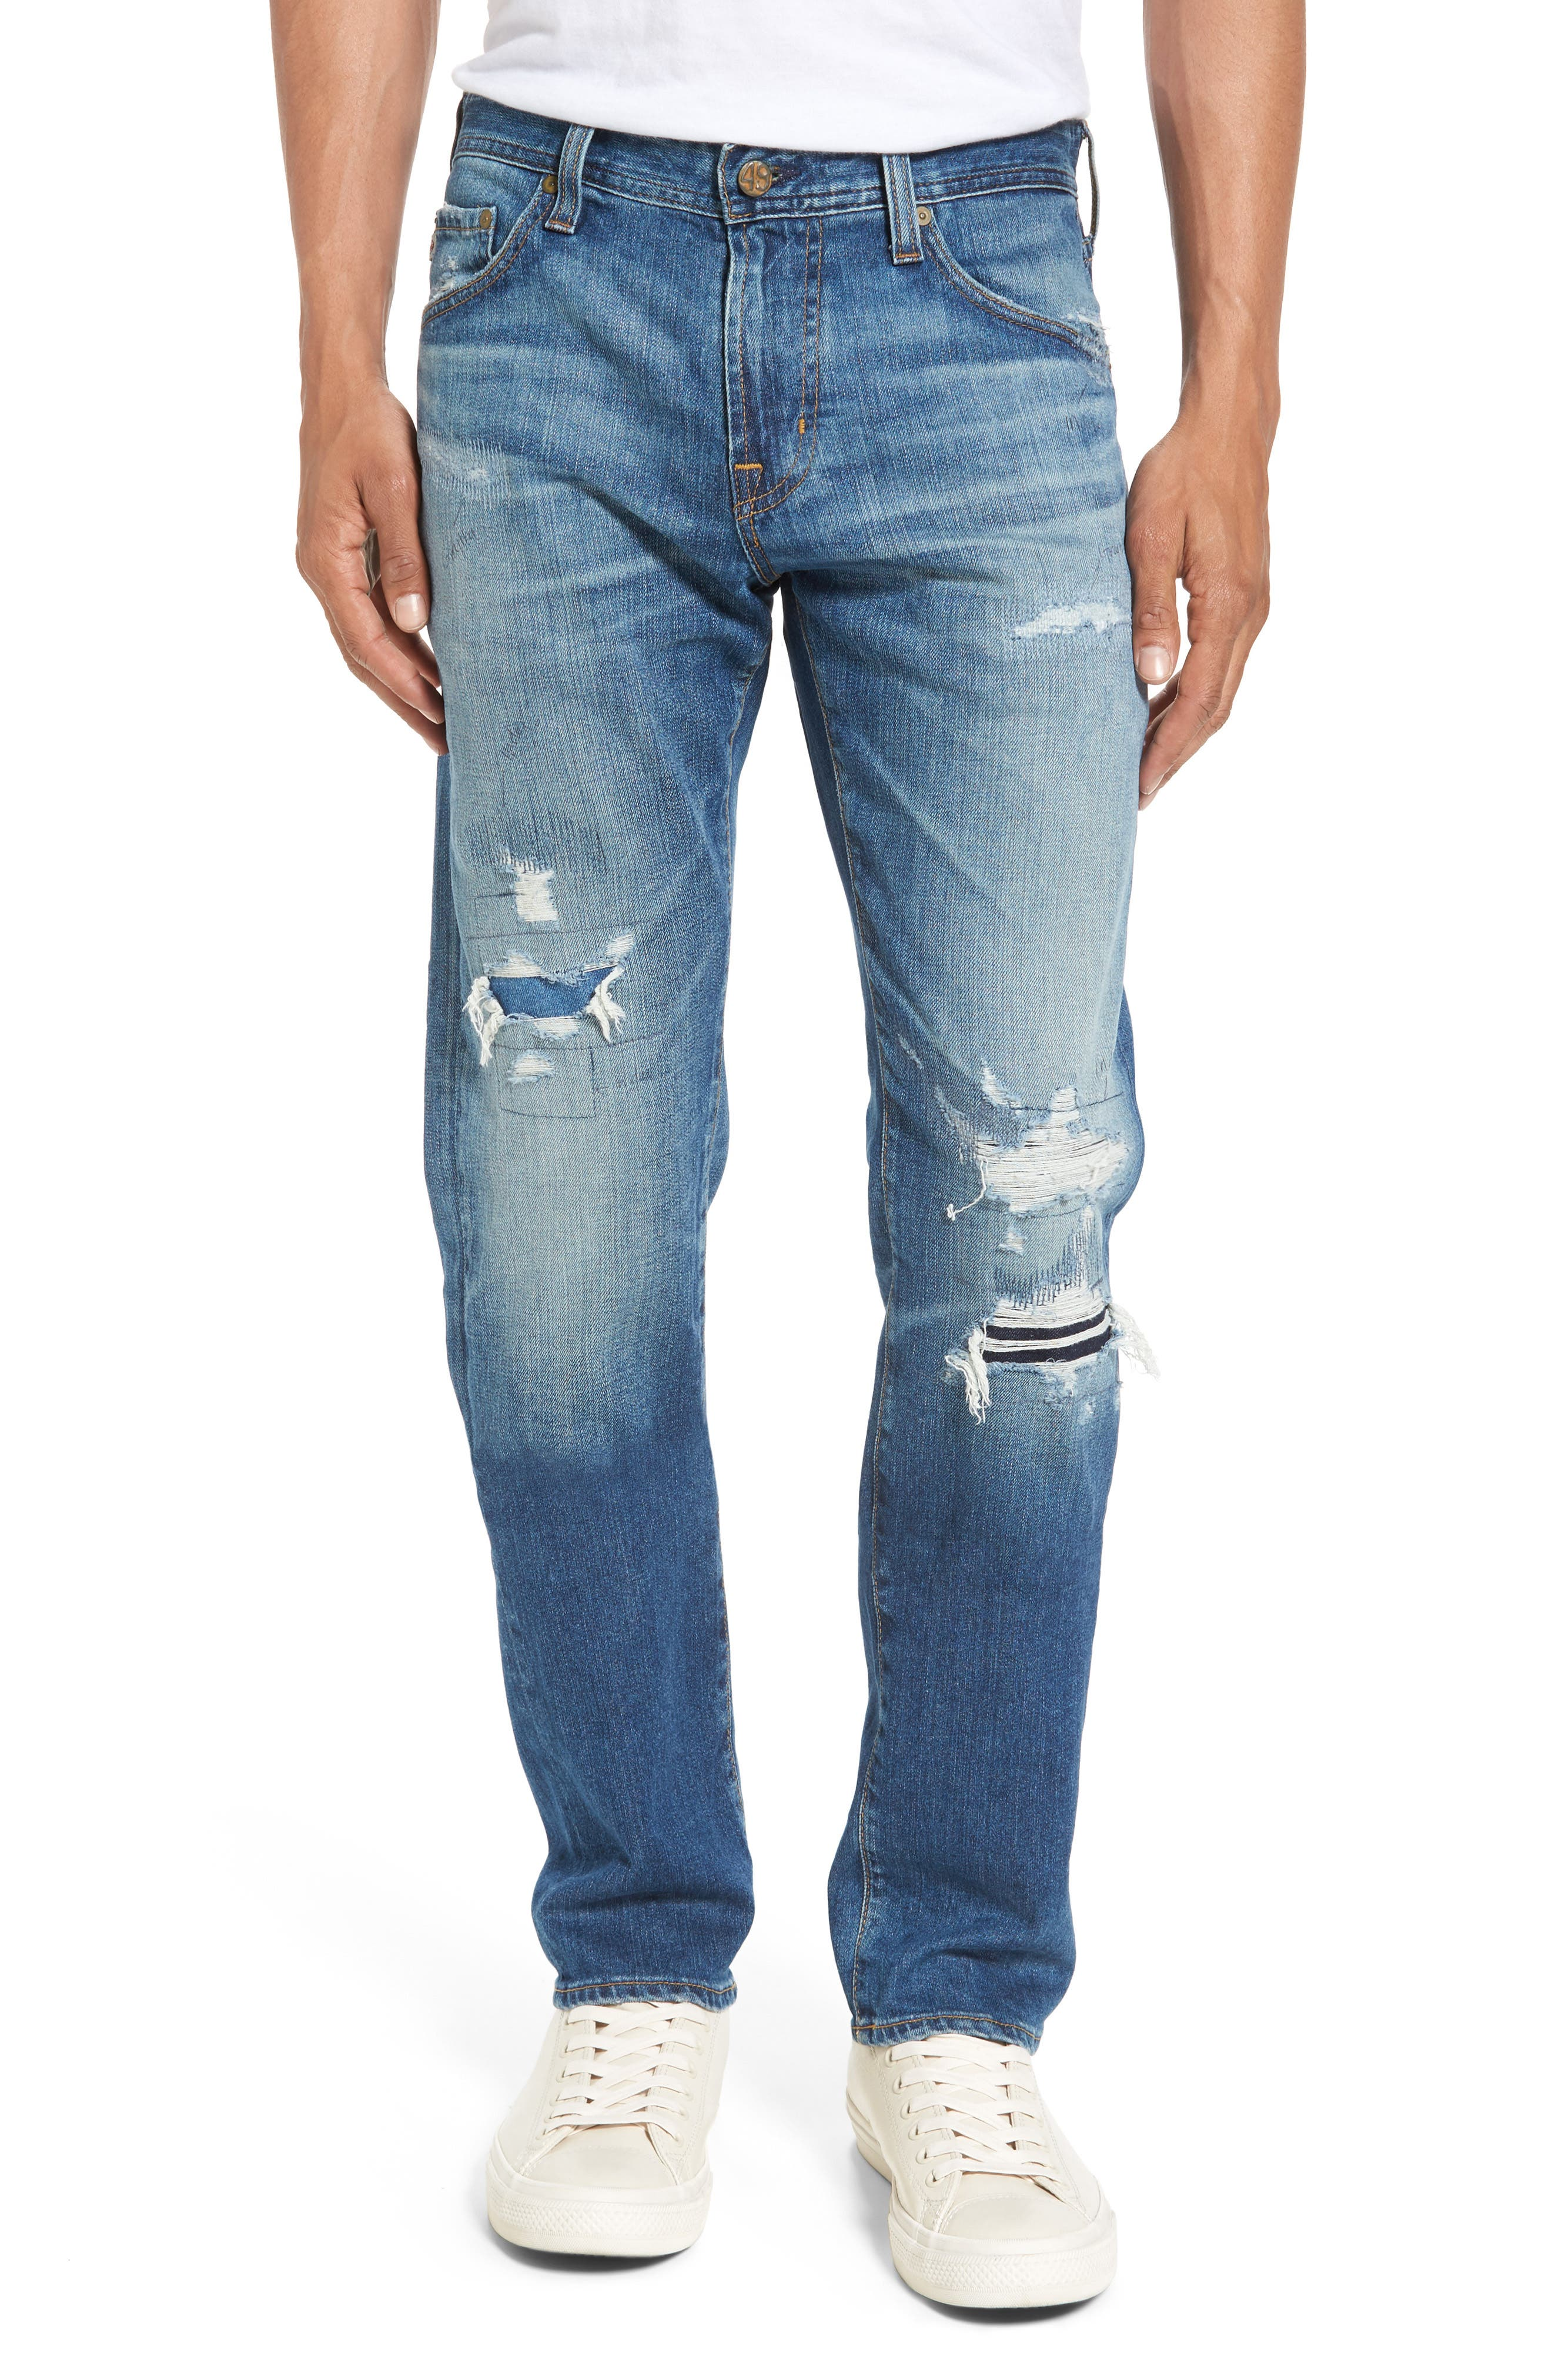 Tellis Slim FIt Jeans,                         Main,                         color, 16 Years Rave Mended